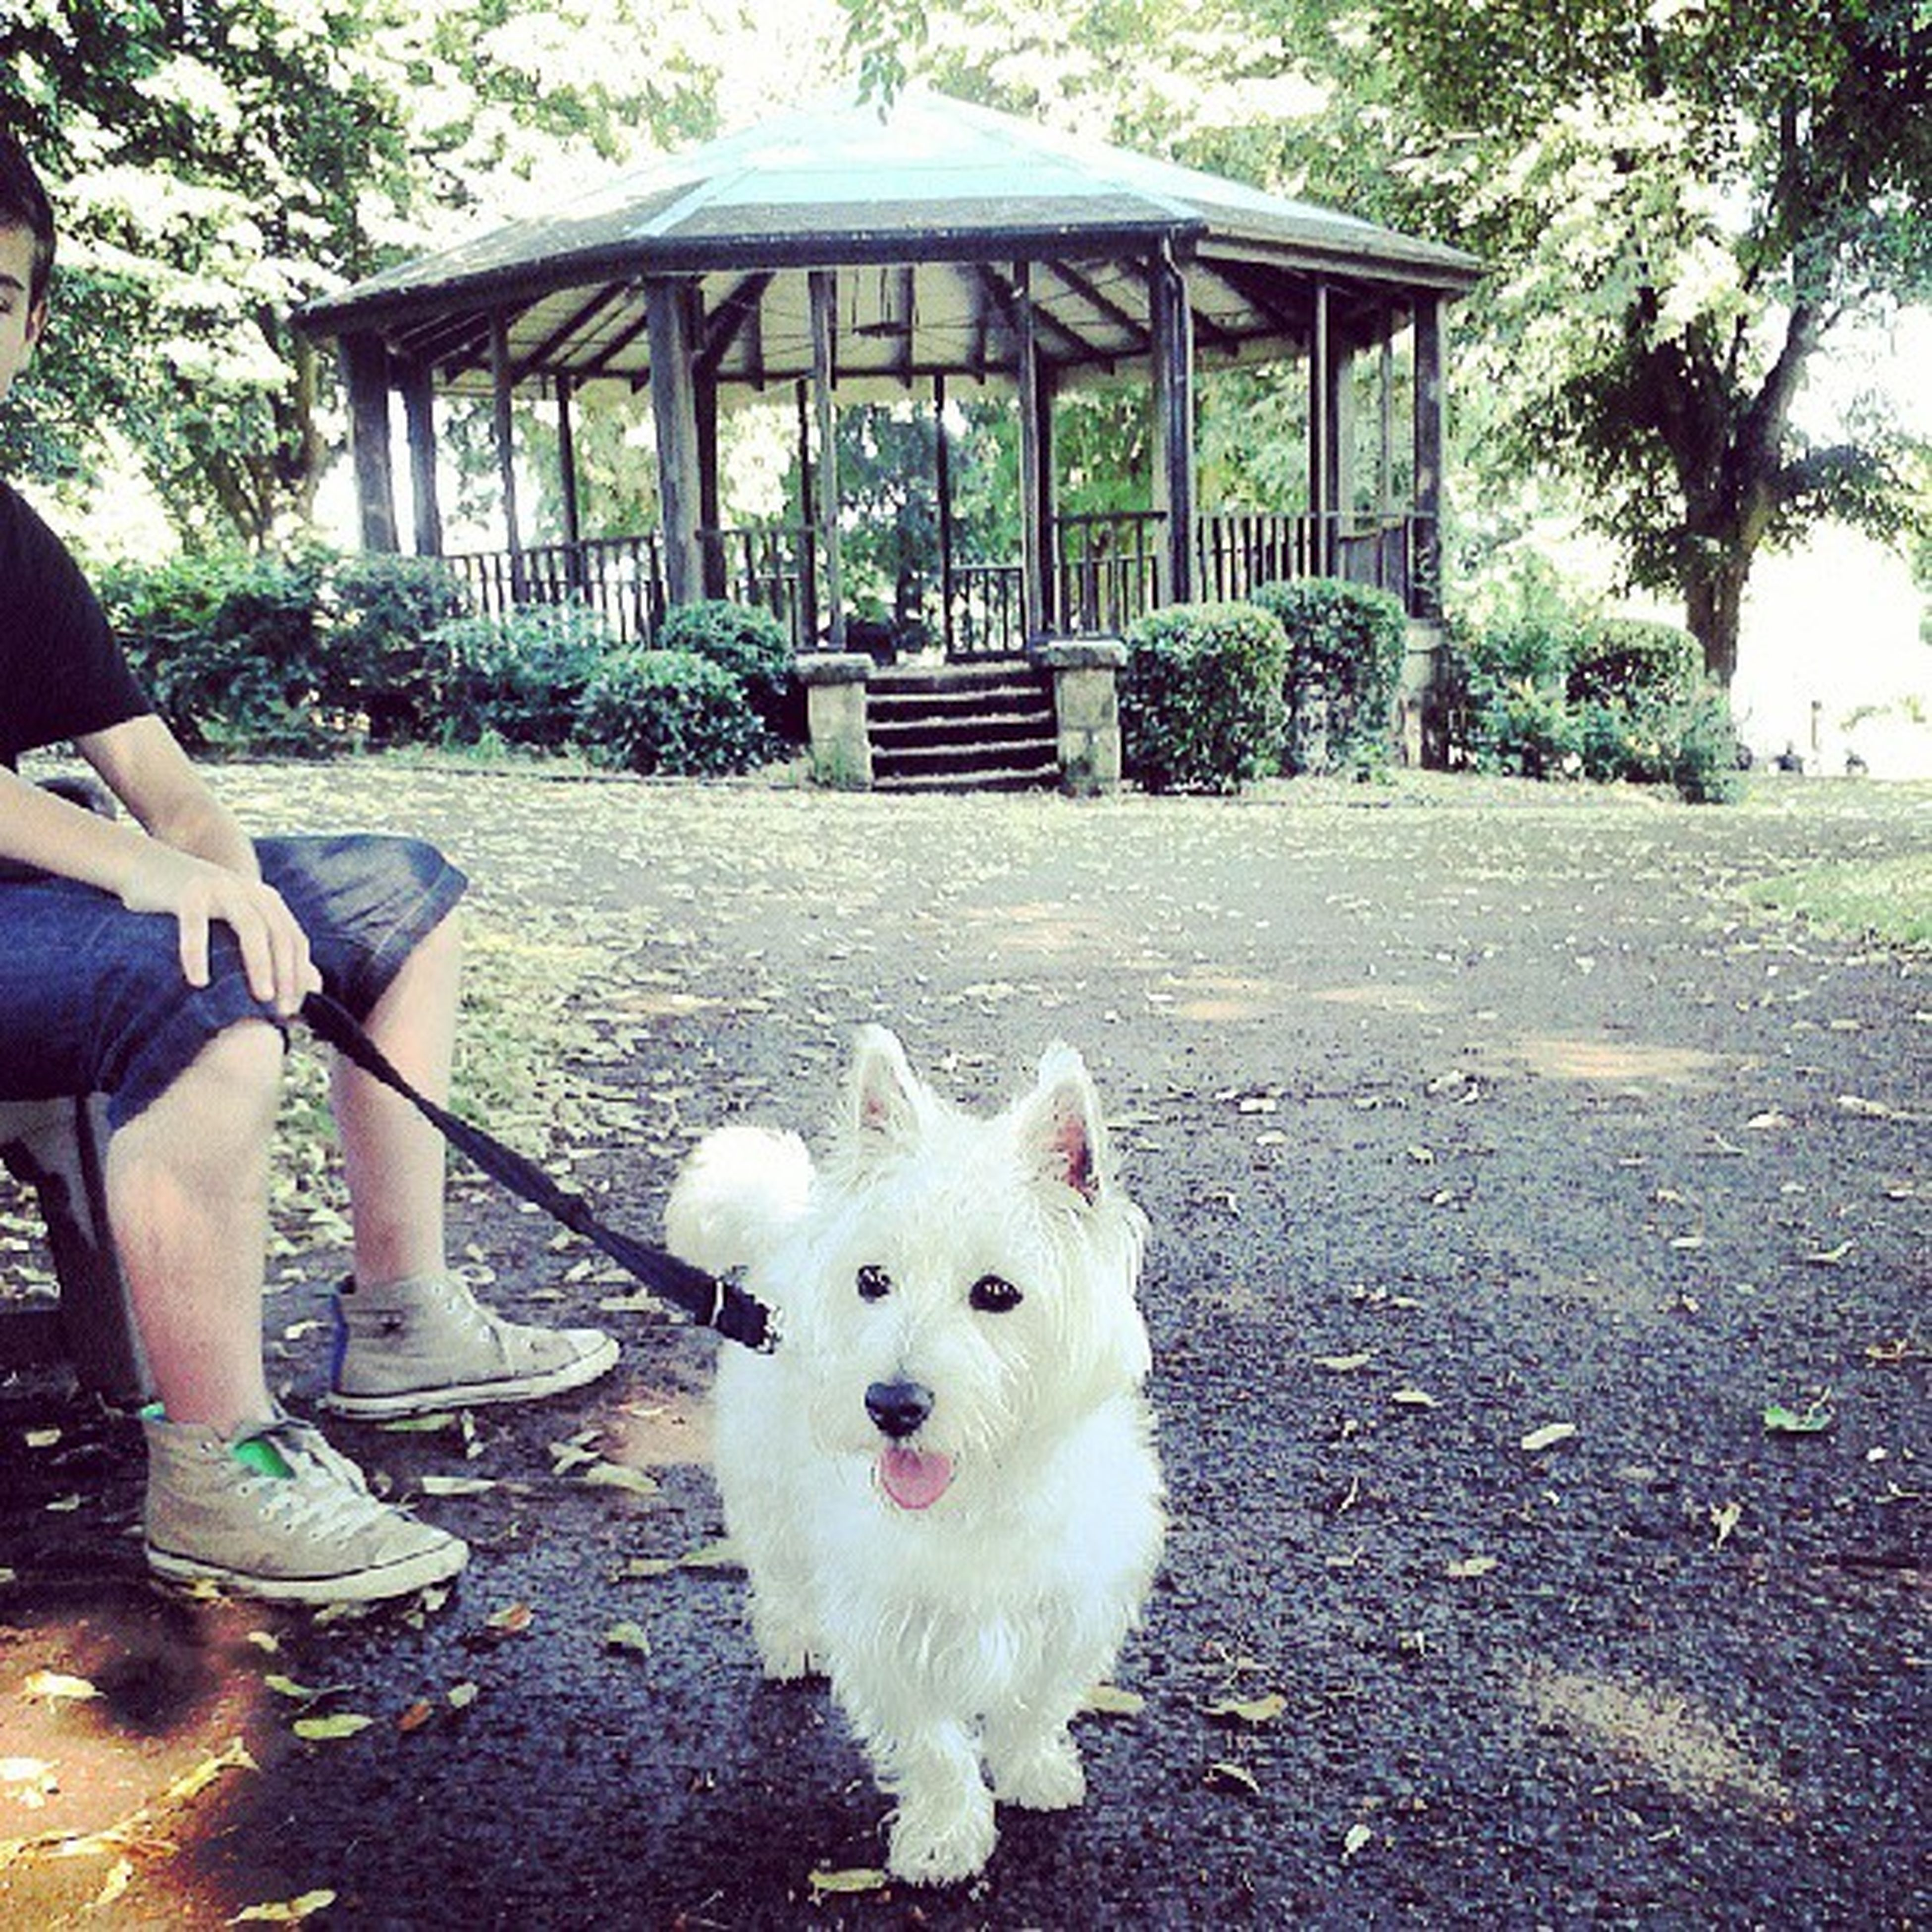 Just A Sunny Day In The Park With Our Ikkle Puppy Dog Iloveyou Maisey White Westie Outside Beautiful Hot Temp Weather